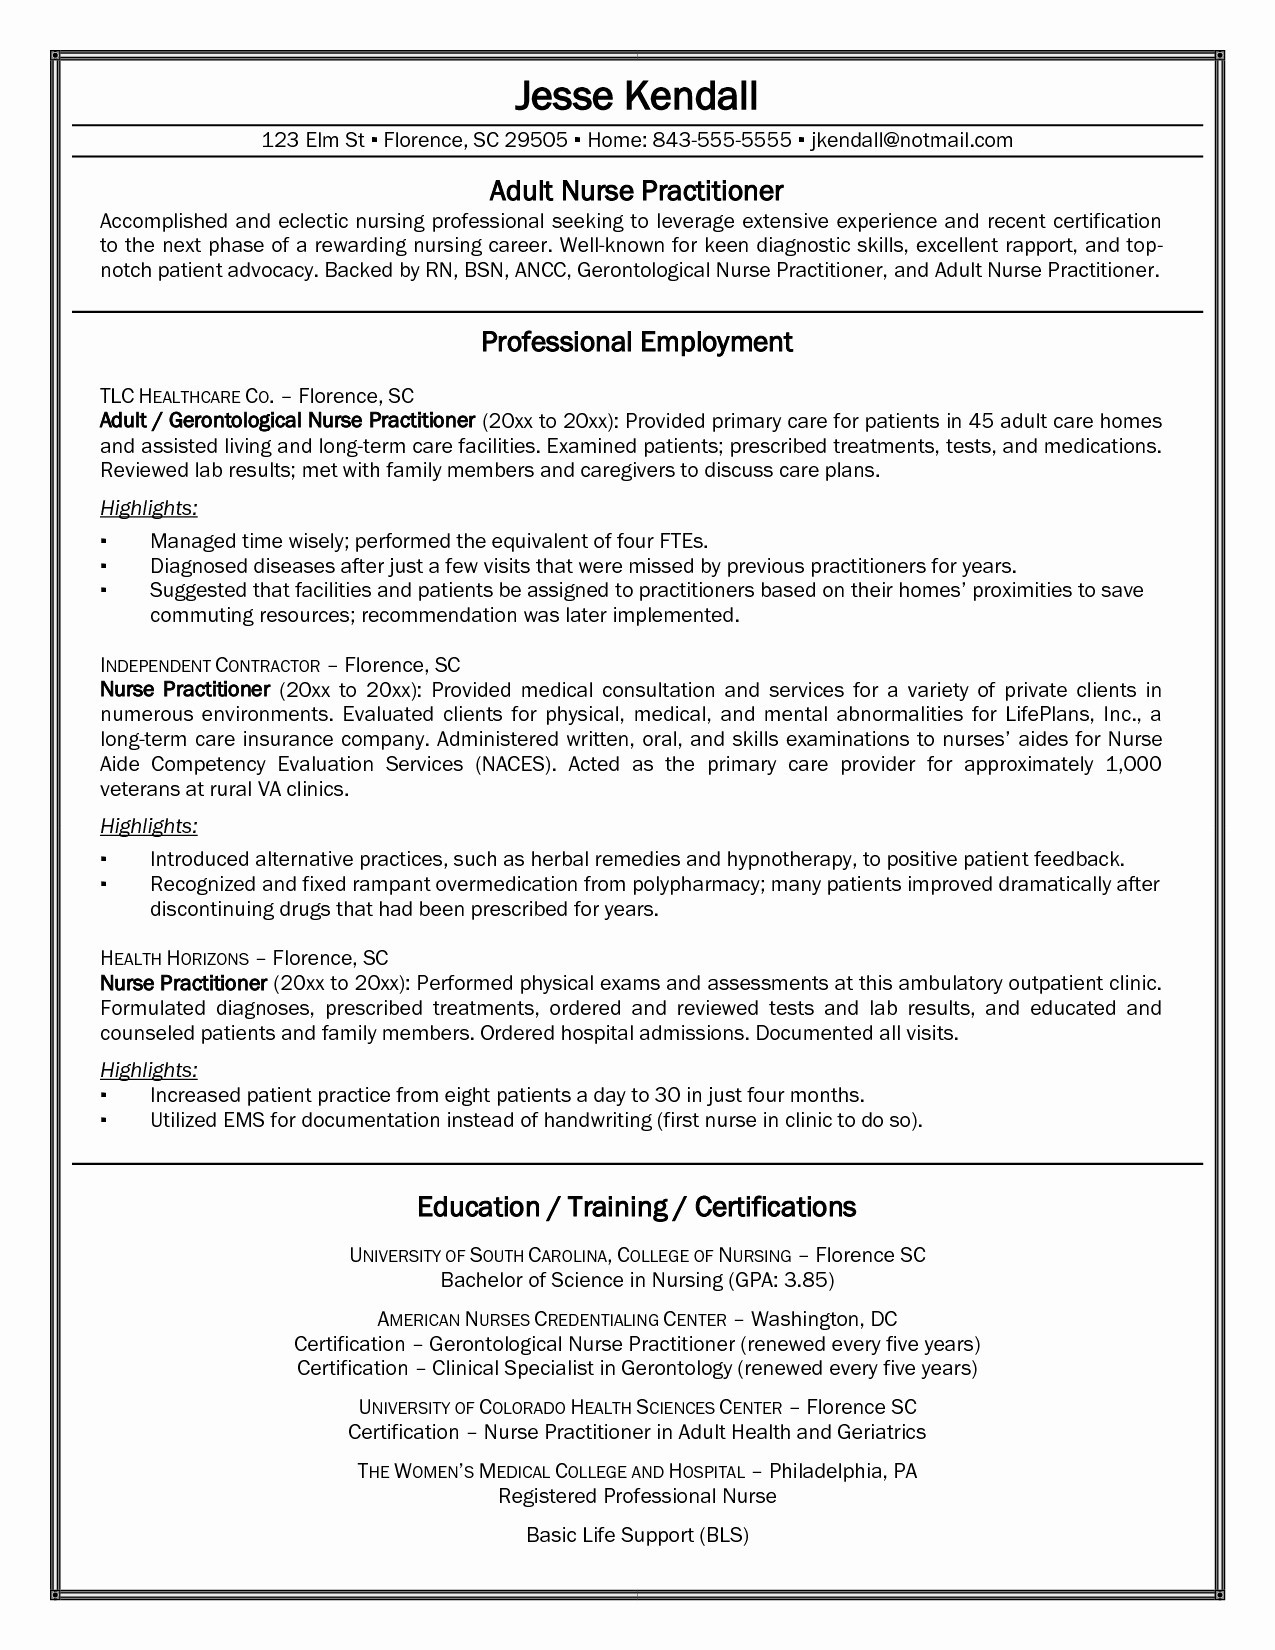 Rn Skills Resume - Professional Nursing Resume Elegant Experienced Rn Resume Fresh